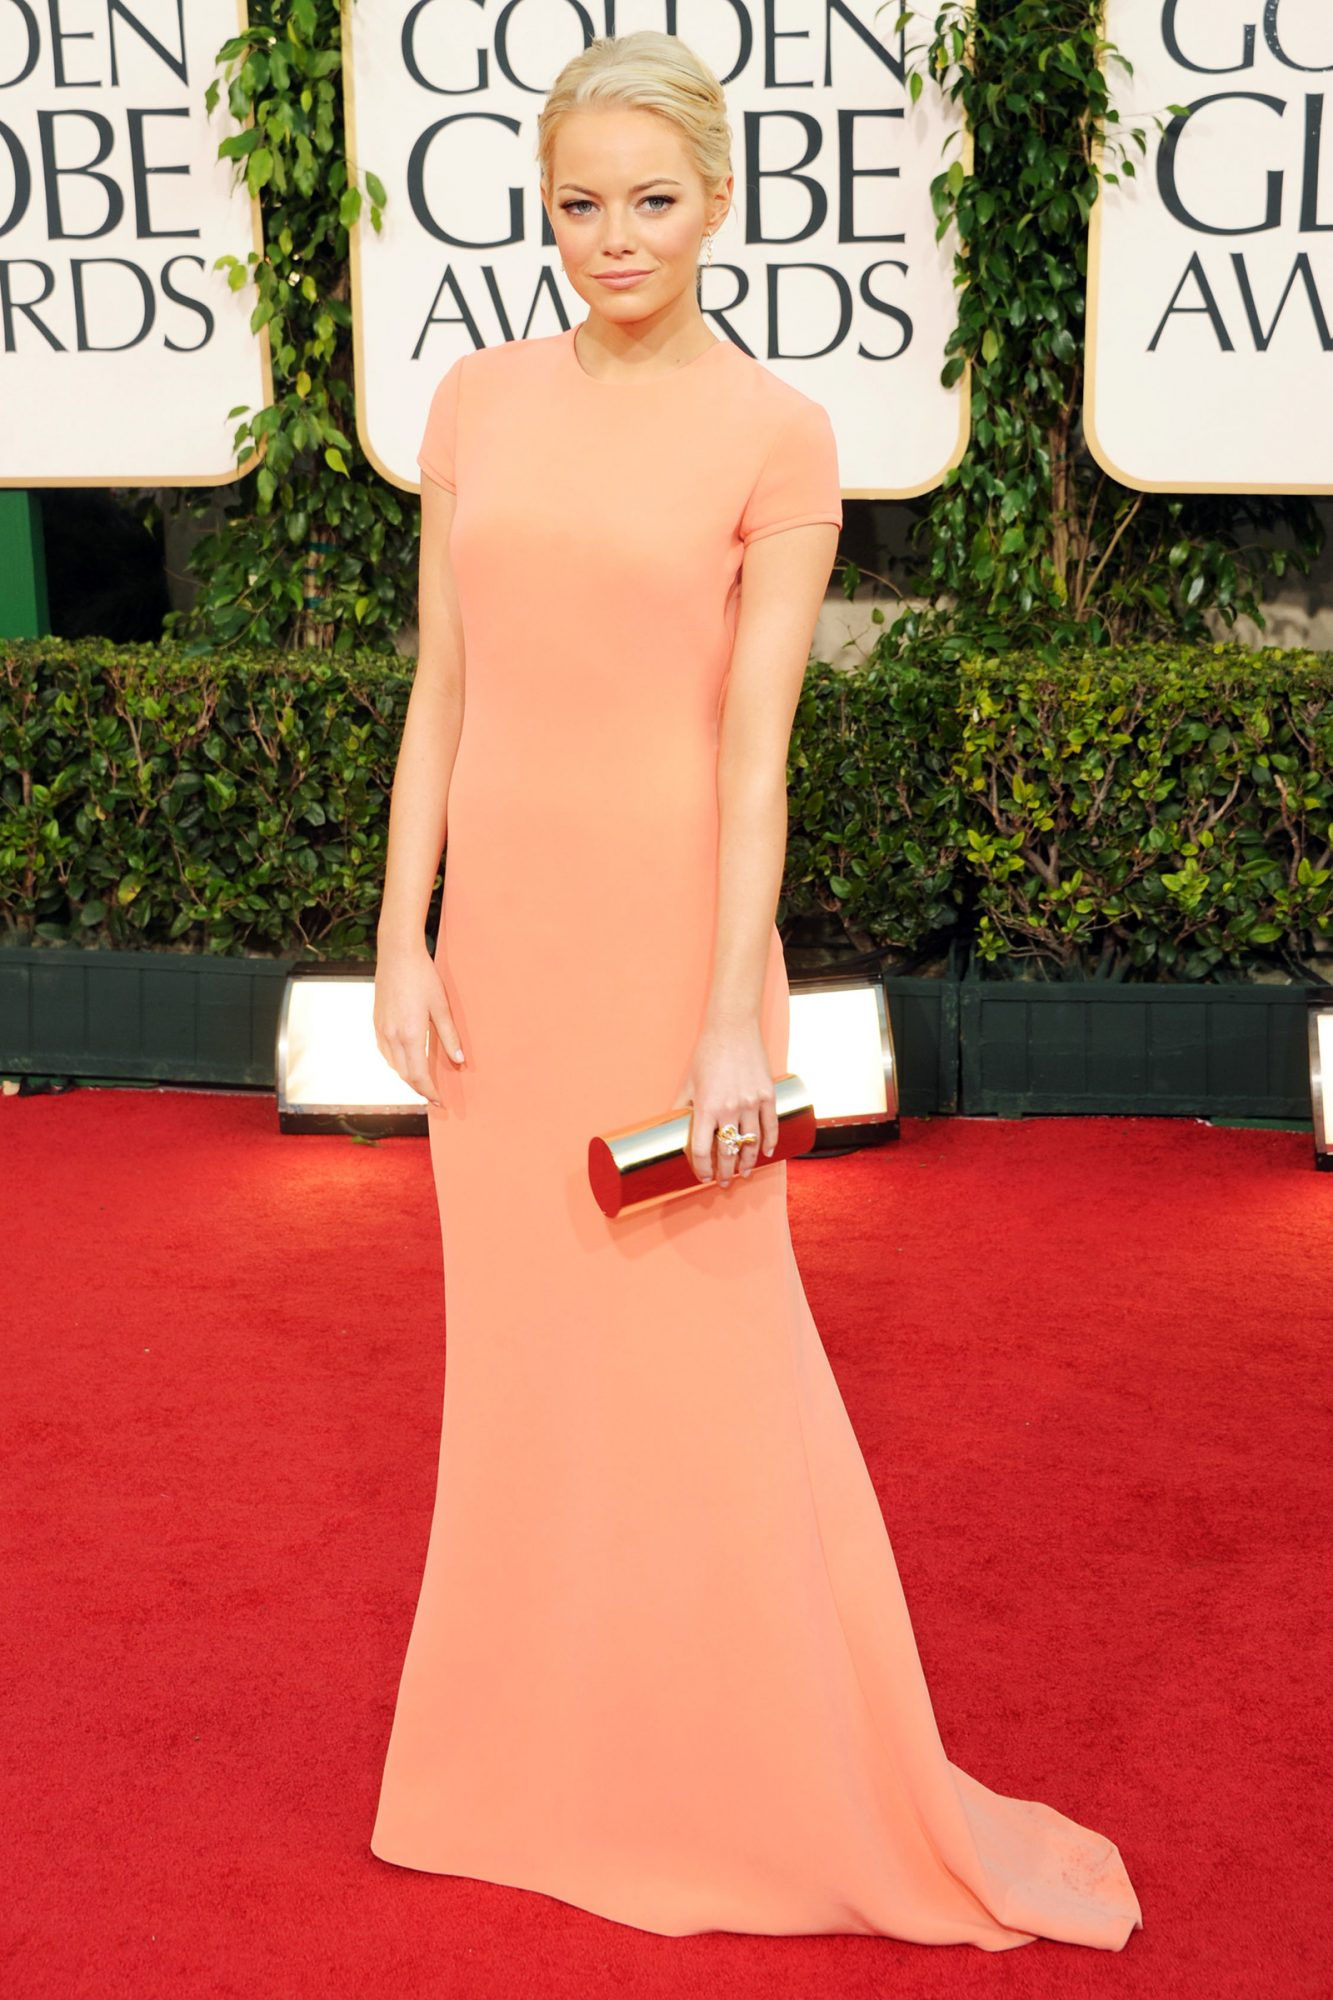 Emma Stone arrives at the 68th Annual Golden Globe Awards held at The Beverly Hilton hotel on January 16, 2011